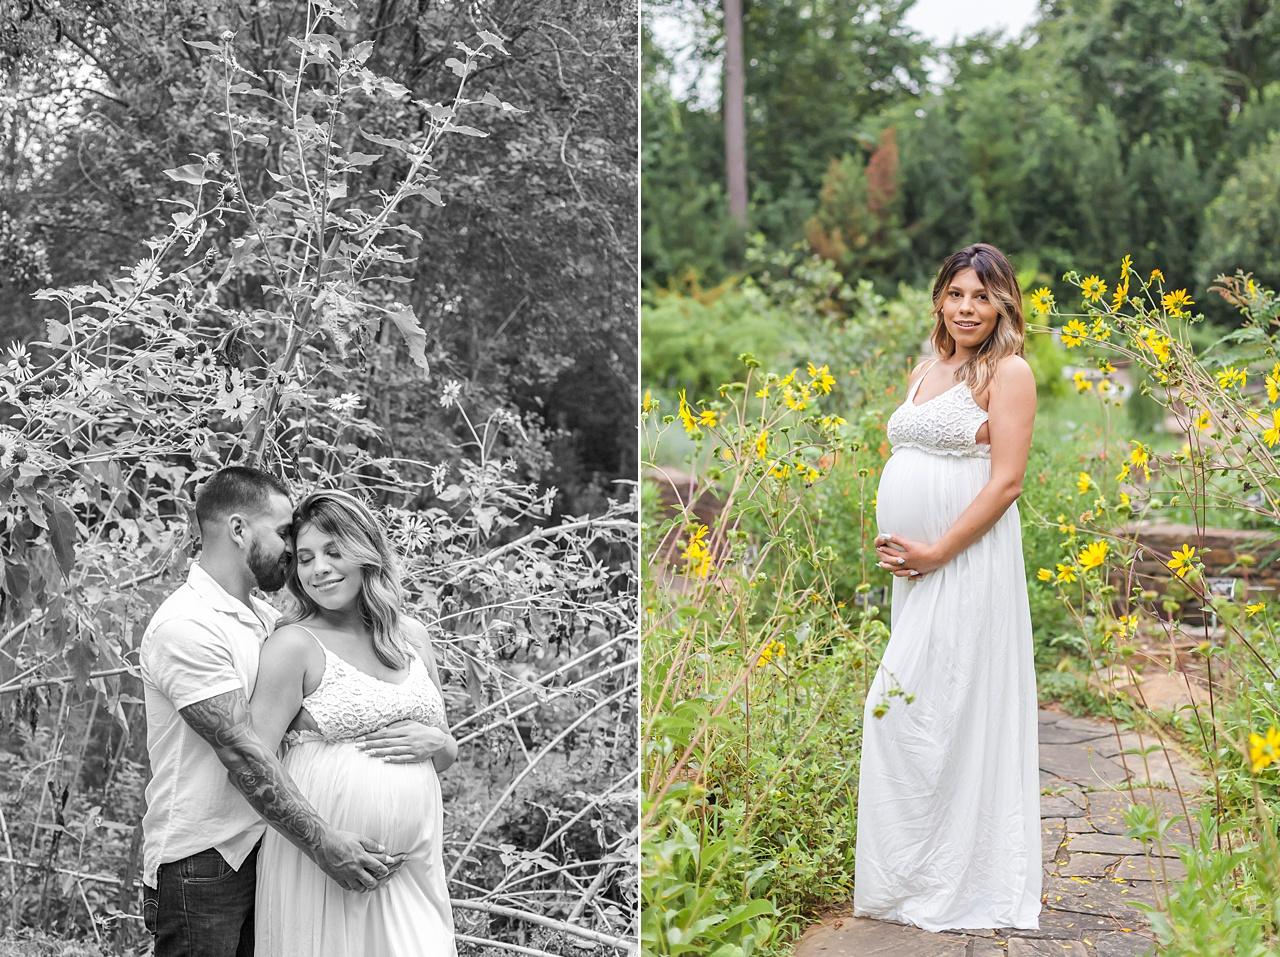 maternity photos at mercer arboretum by kristal bean photography